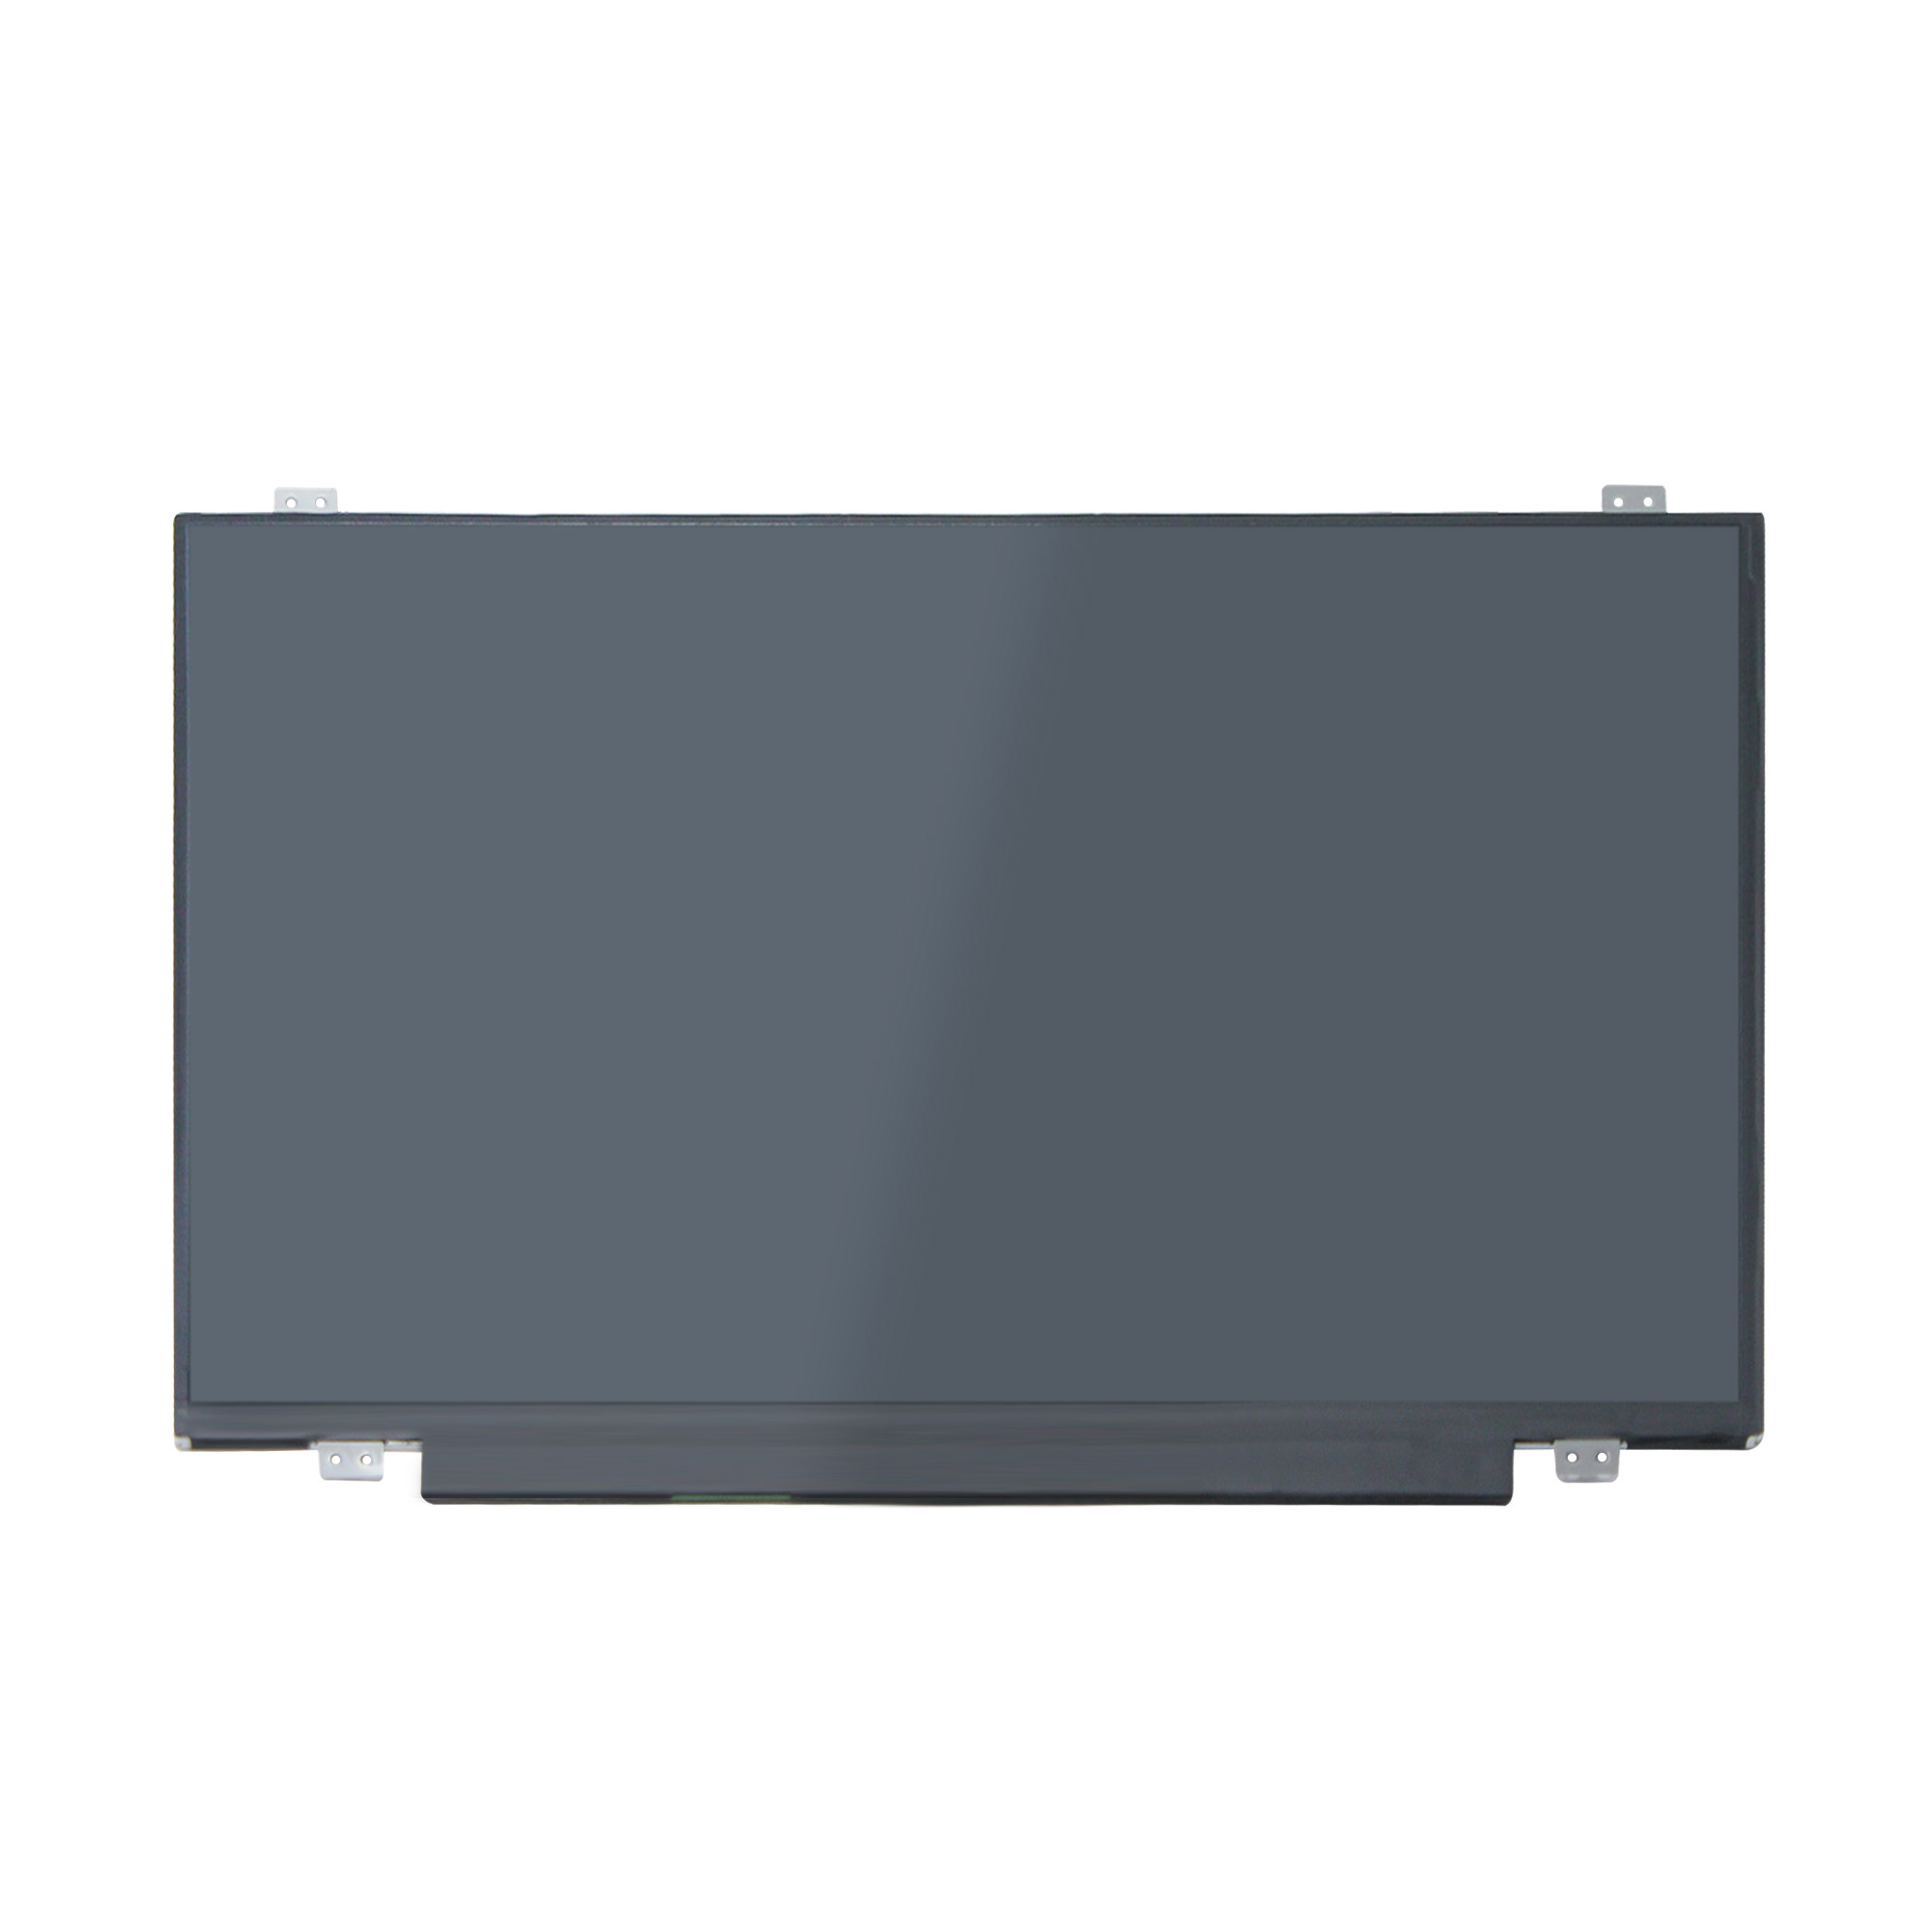 """Asus VivoBook 15 K570UD-ES76 LED LCD Replacement Screen 15.6/"""" FHD Display New"""